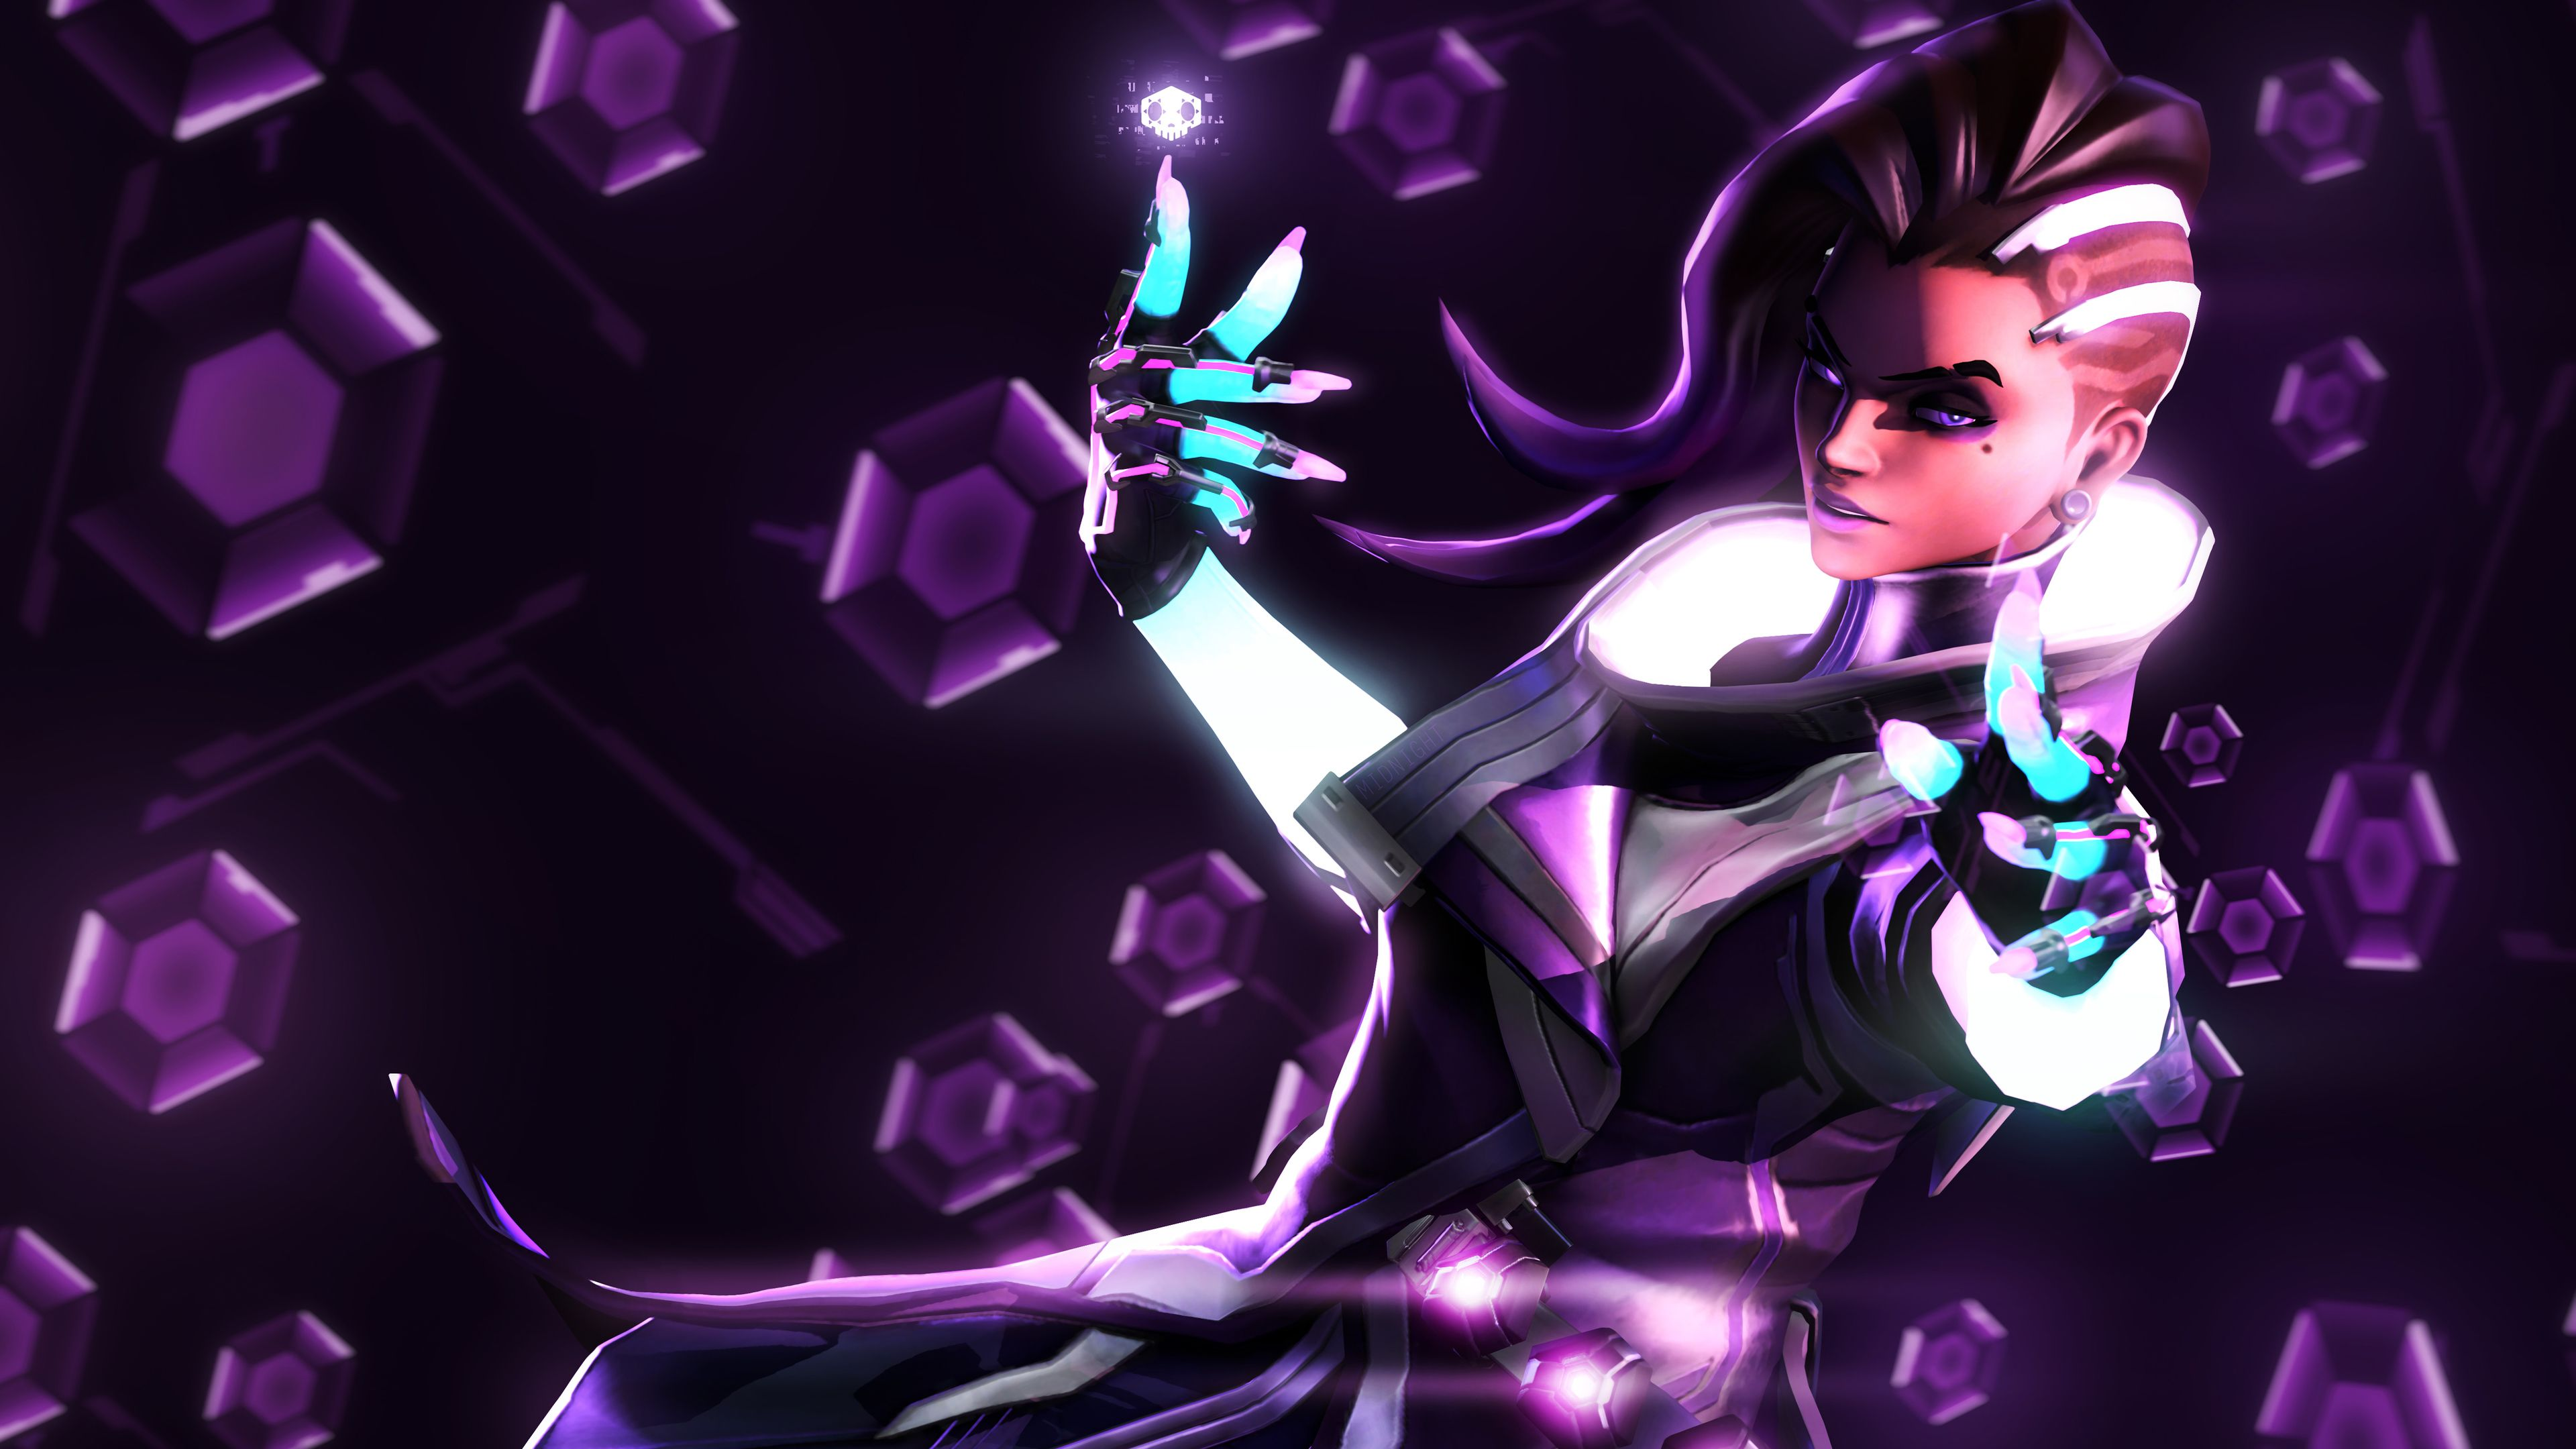 Wallpaper 4k Sombra Overwatch Artwork 4k 4kwallpapers